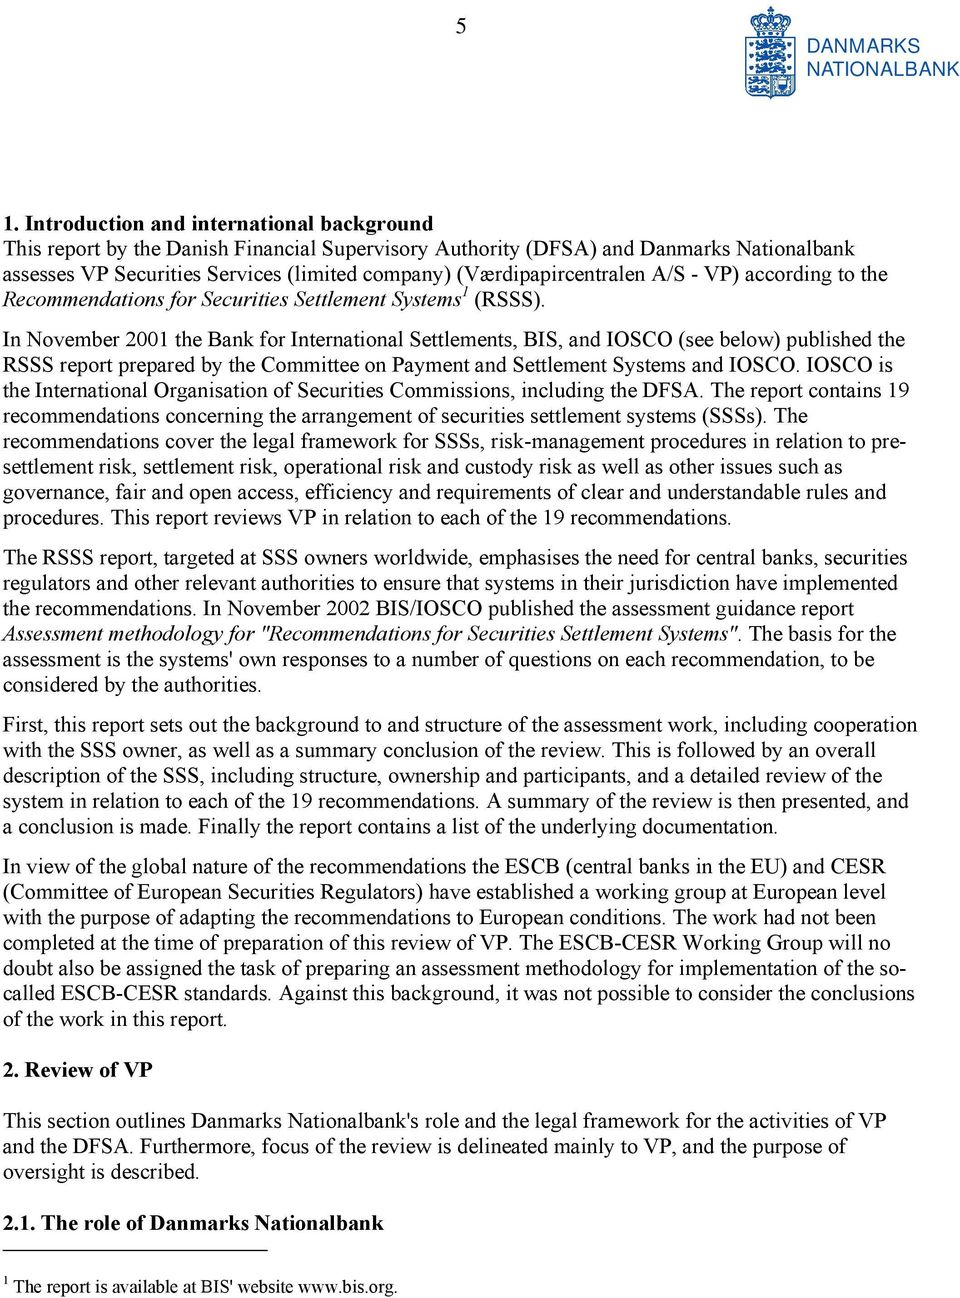 In November 2001 the Bank for International Settlements, BIS, and IOSCO (see below) published the RSSS report prepared by the Committee on Payment and Settlement Systems and IOSCO.